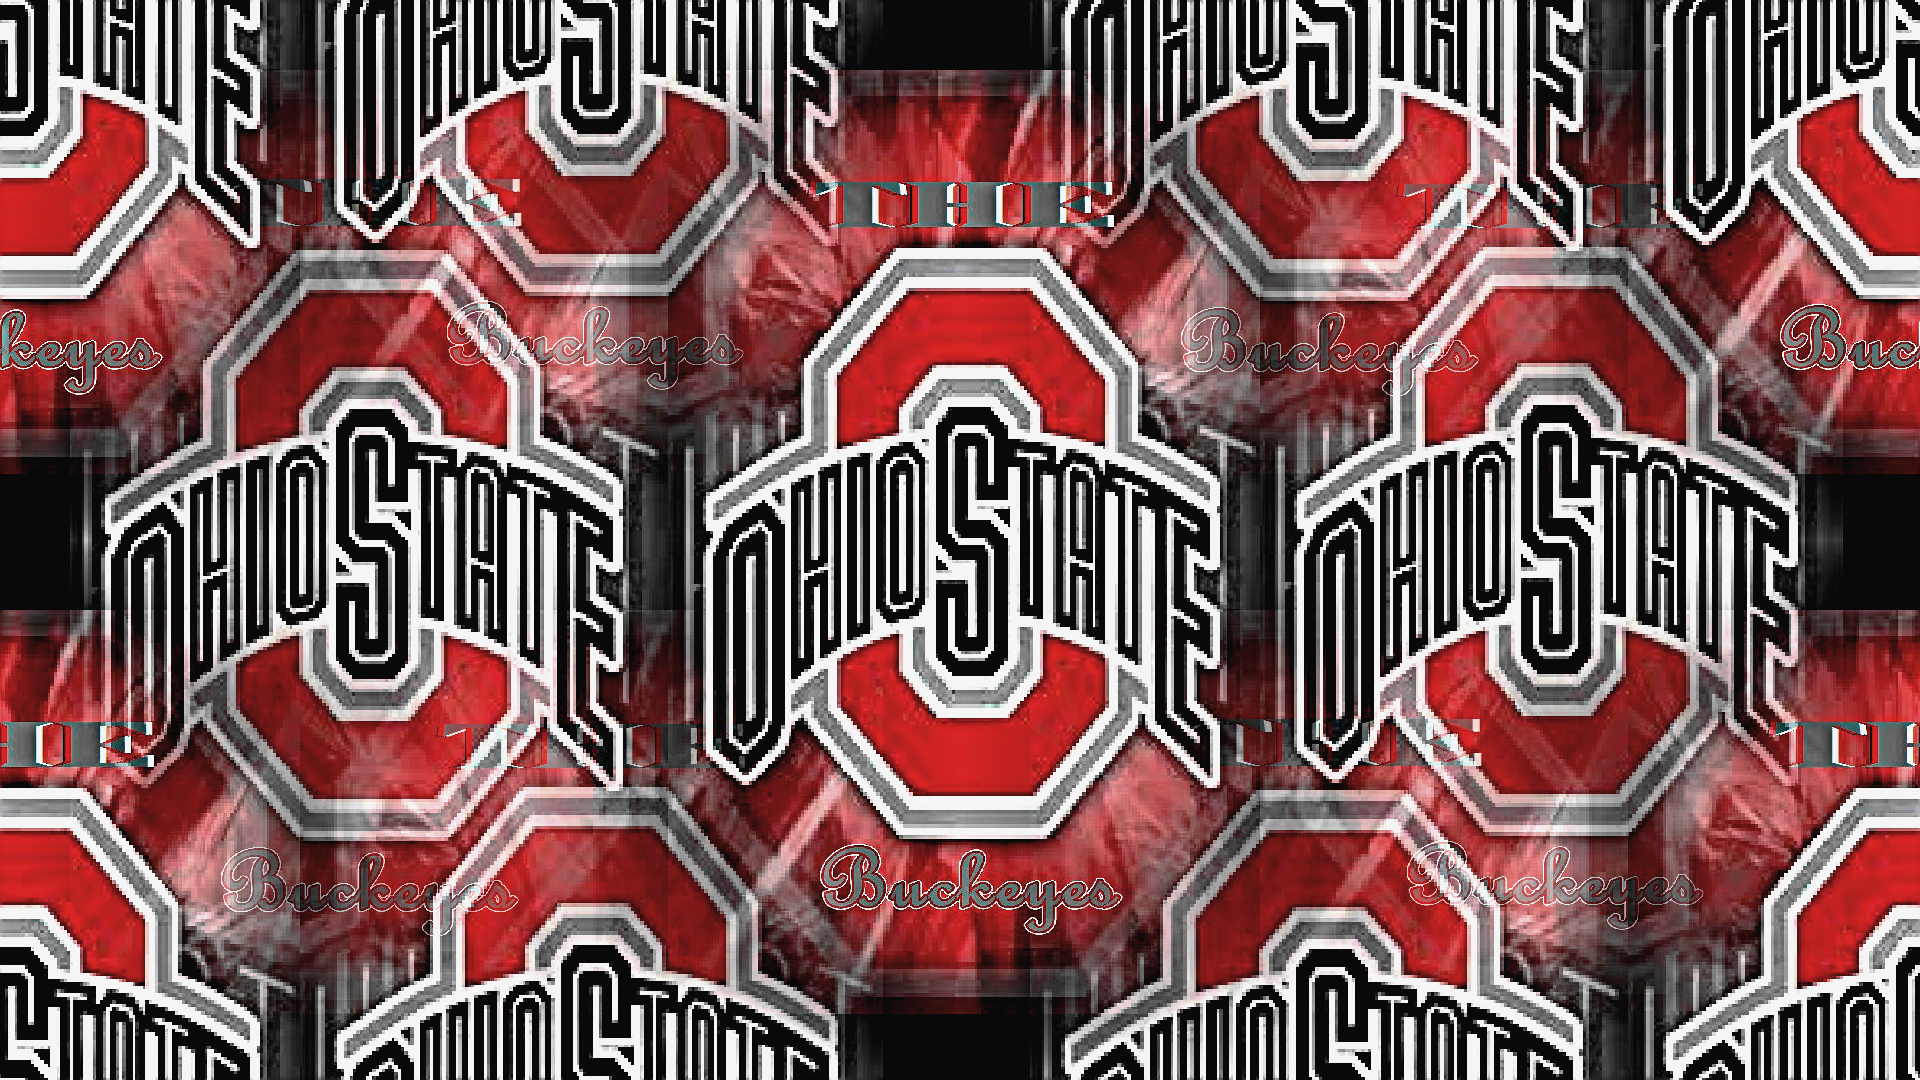 Red Block O Double Layered Ohio State Football Wallpaper 28507164 Fanpop